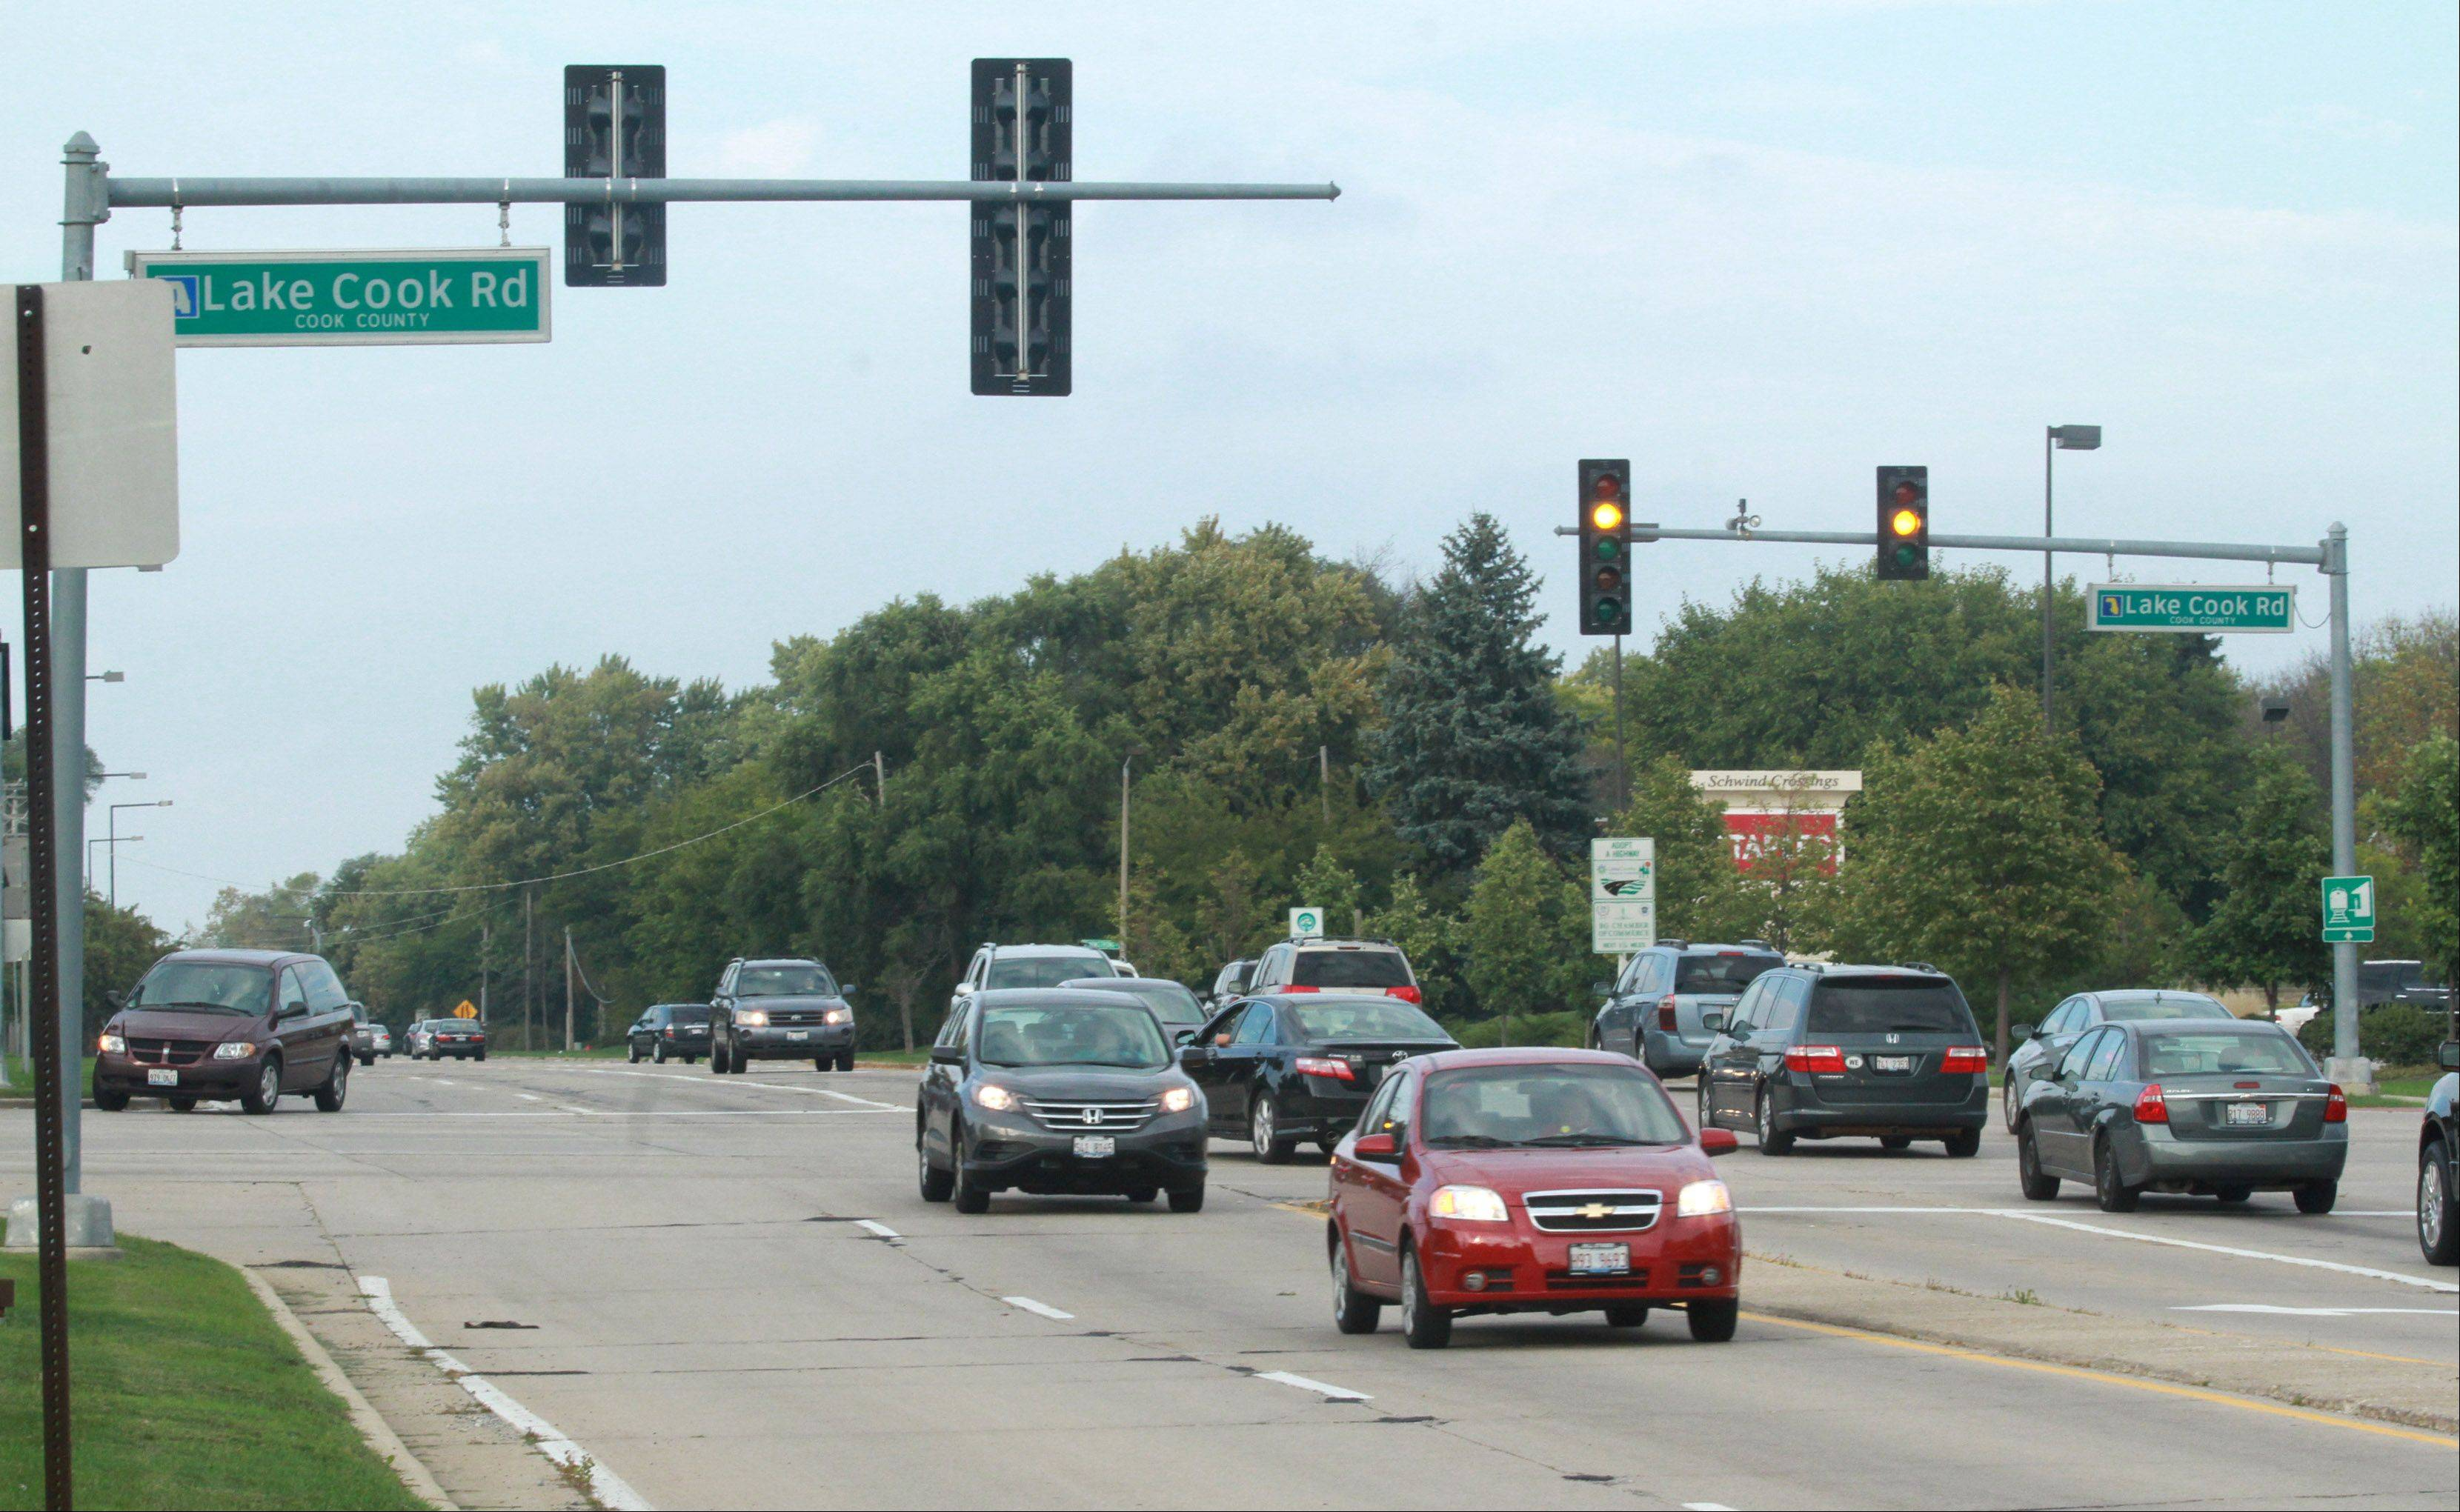 Buffalo Grove residents will get two more opportunities next month to weigh in on a $100 million plan to improve traffic flow near Lake Cook and Weiland roads. the plan has met with some resistance from nearby residents, particularly those opposed to plans for a new connector road in the area.